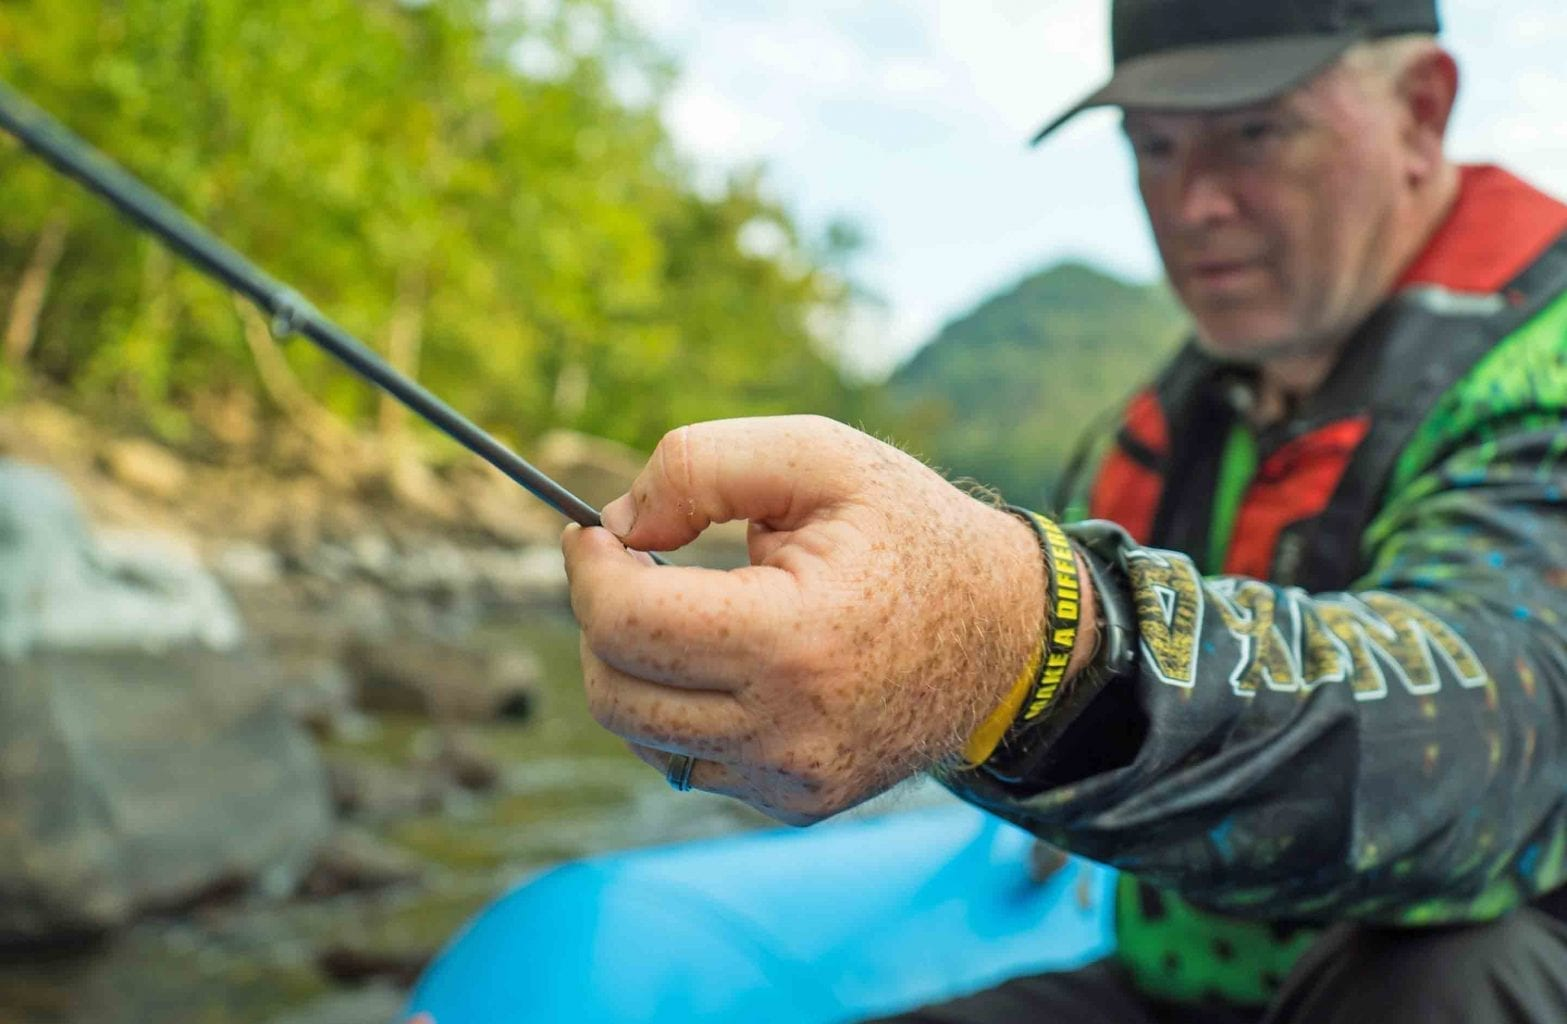 A fisherman casts his rod into the Lower New River on a guided fishing trip with ACE Adventure Resort